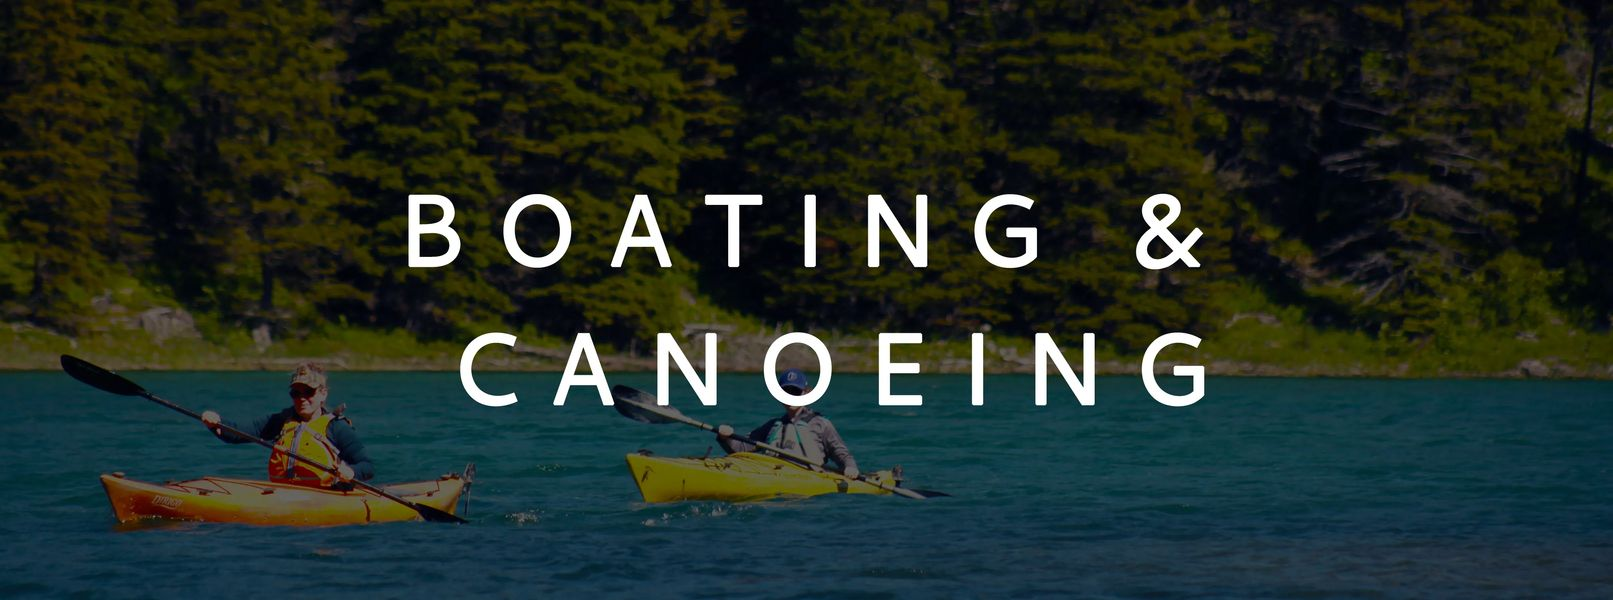 Boating and Canoeing in Central Montana